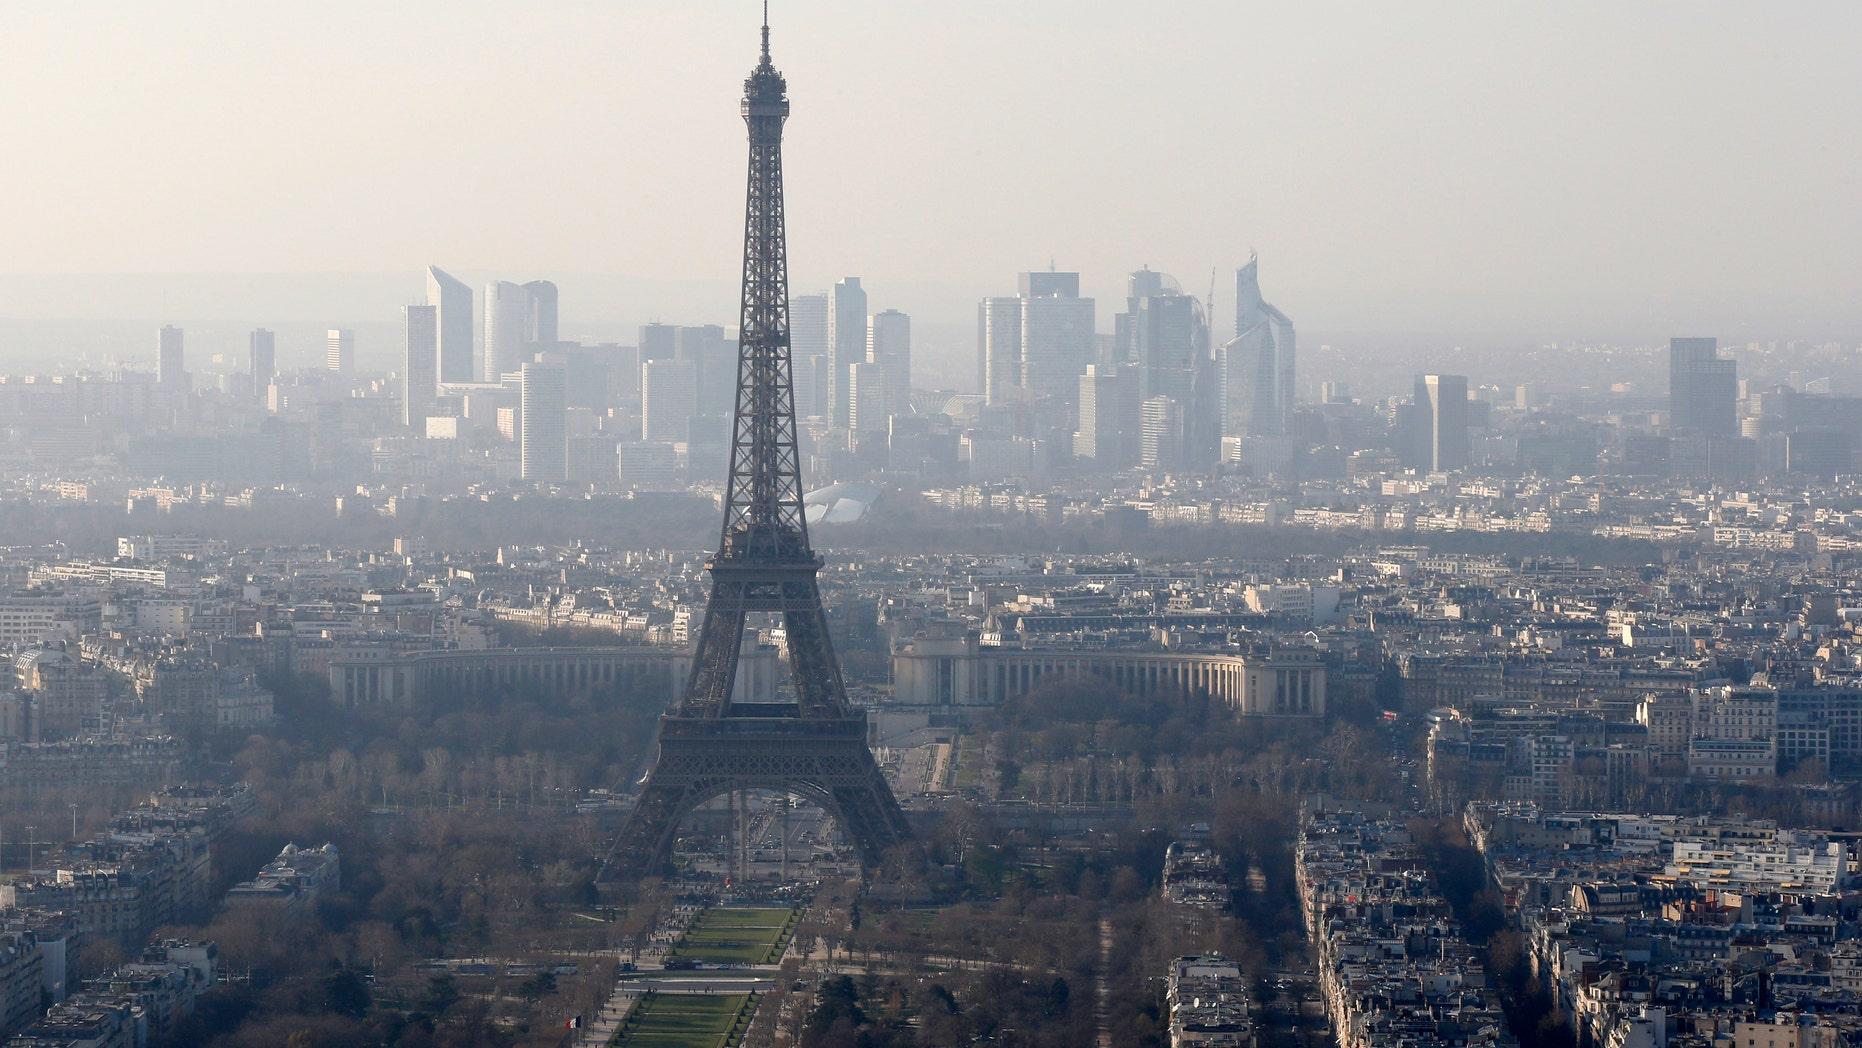 March 10, 2014: A general view of the Eiffel tower and La Defense business district skyline in the background as warm and sunny weather continues in France.